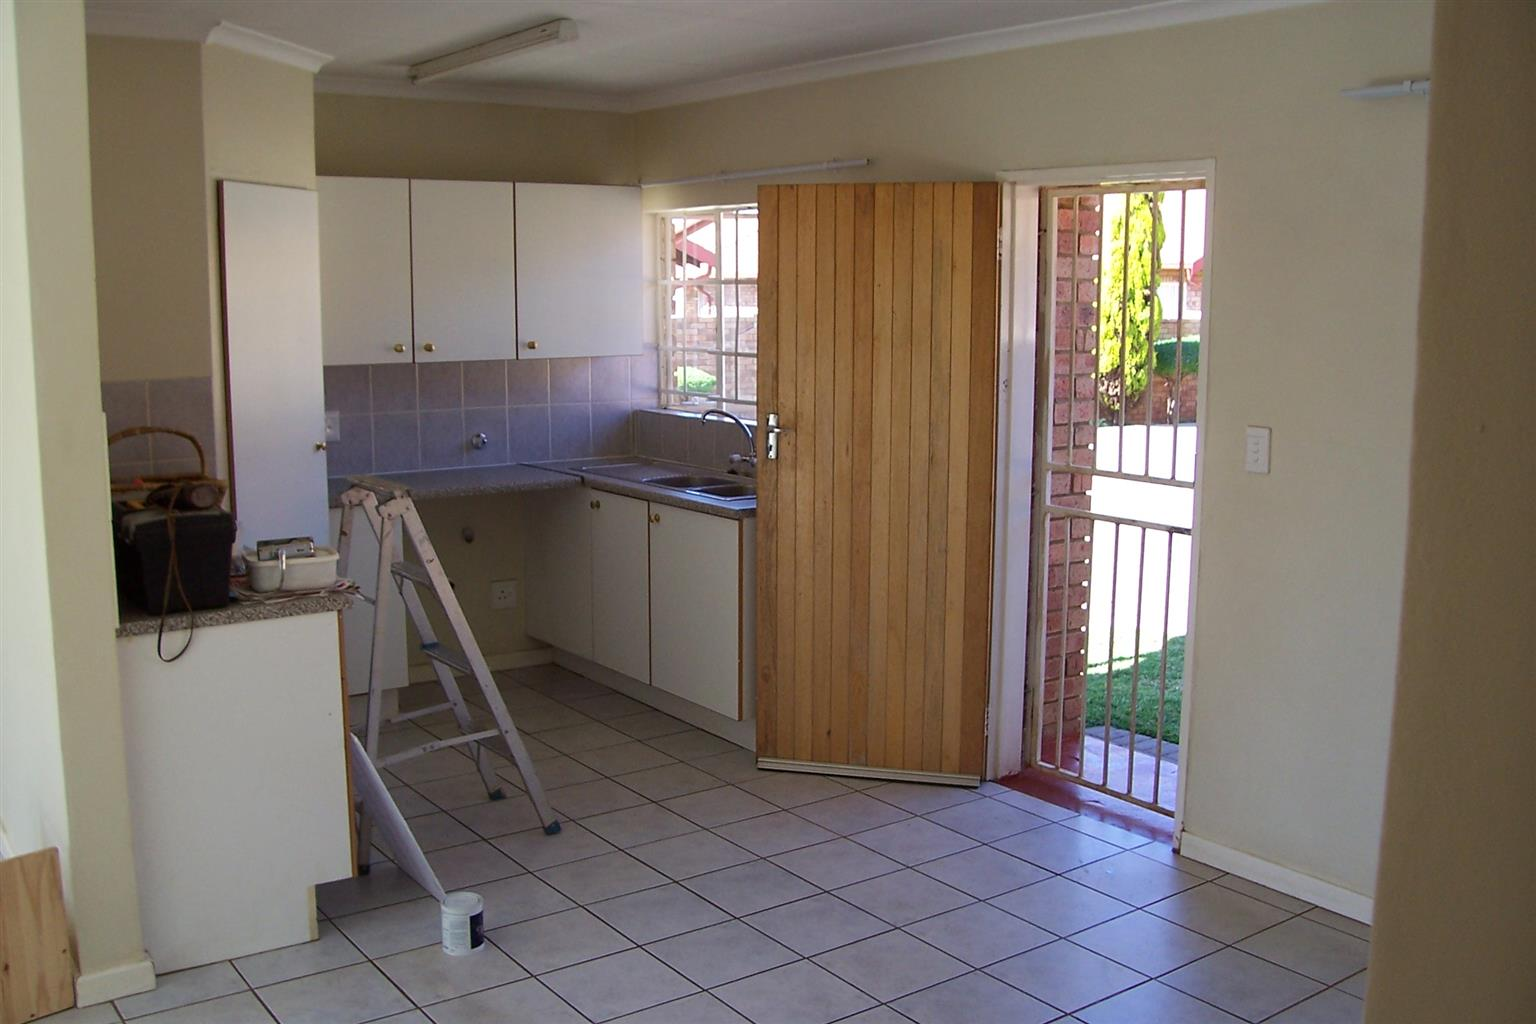 Spacious 3 bedrooms, 2 bathrooms townhouse to let, Centurion, Highveld